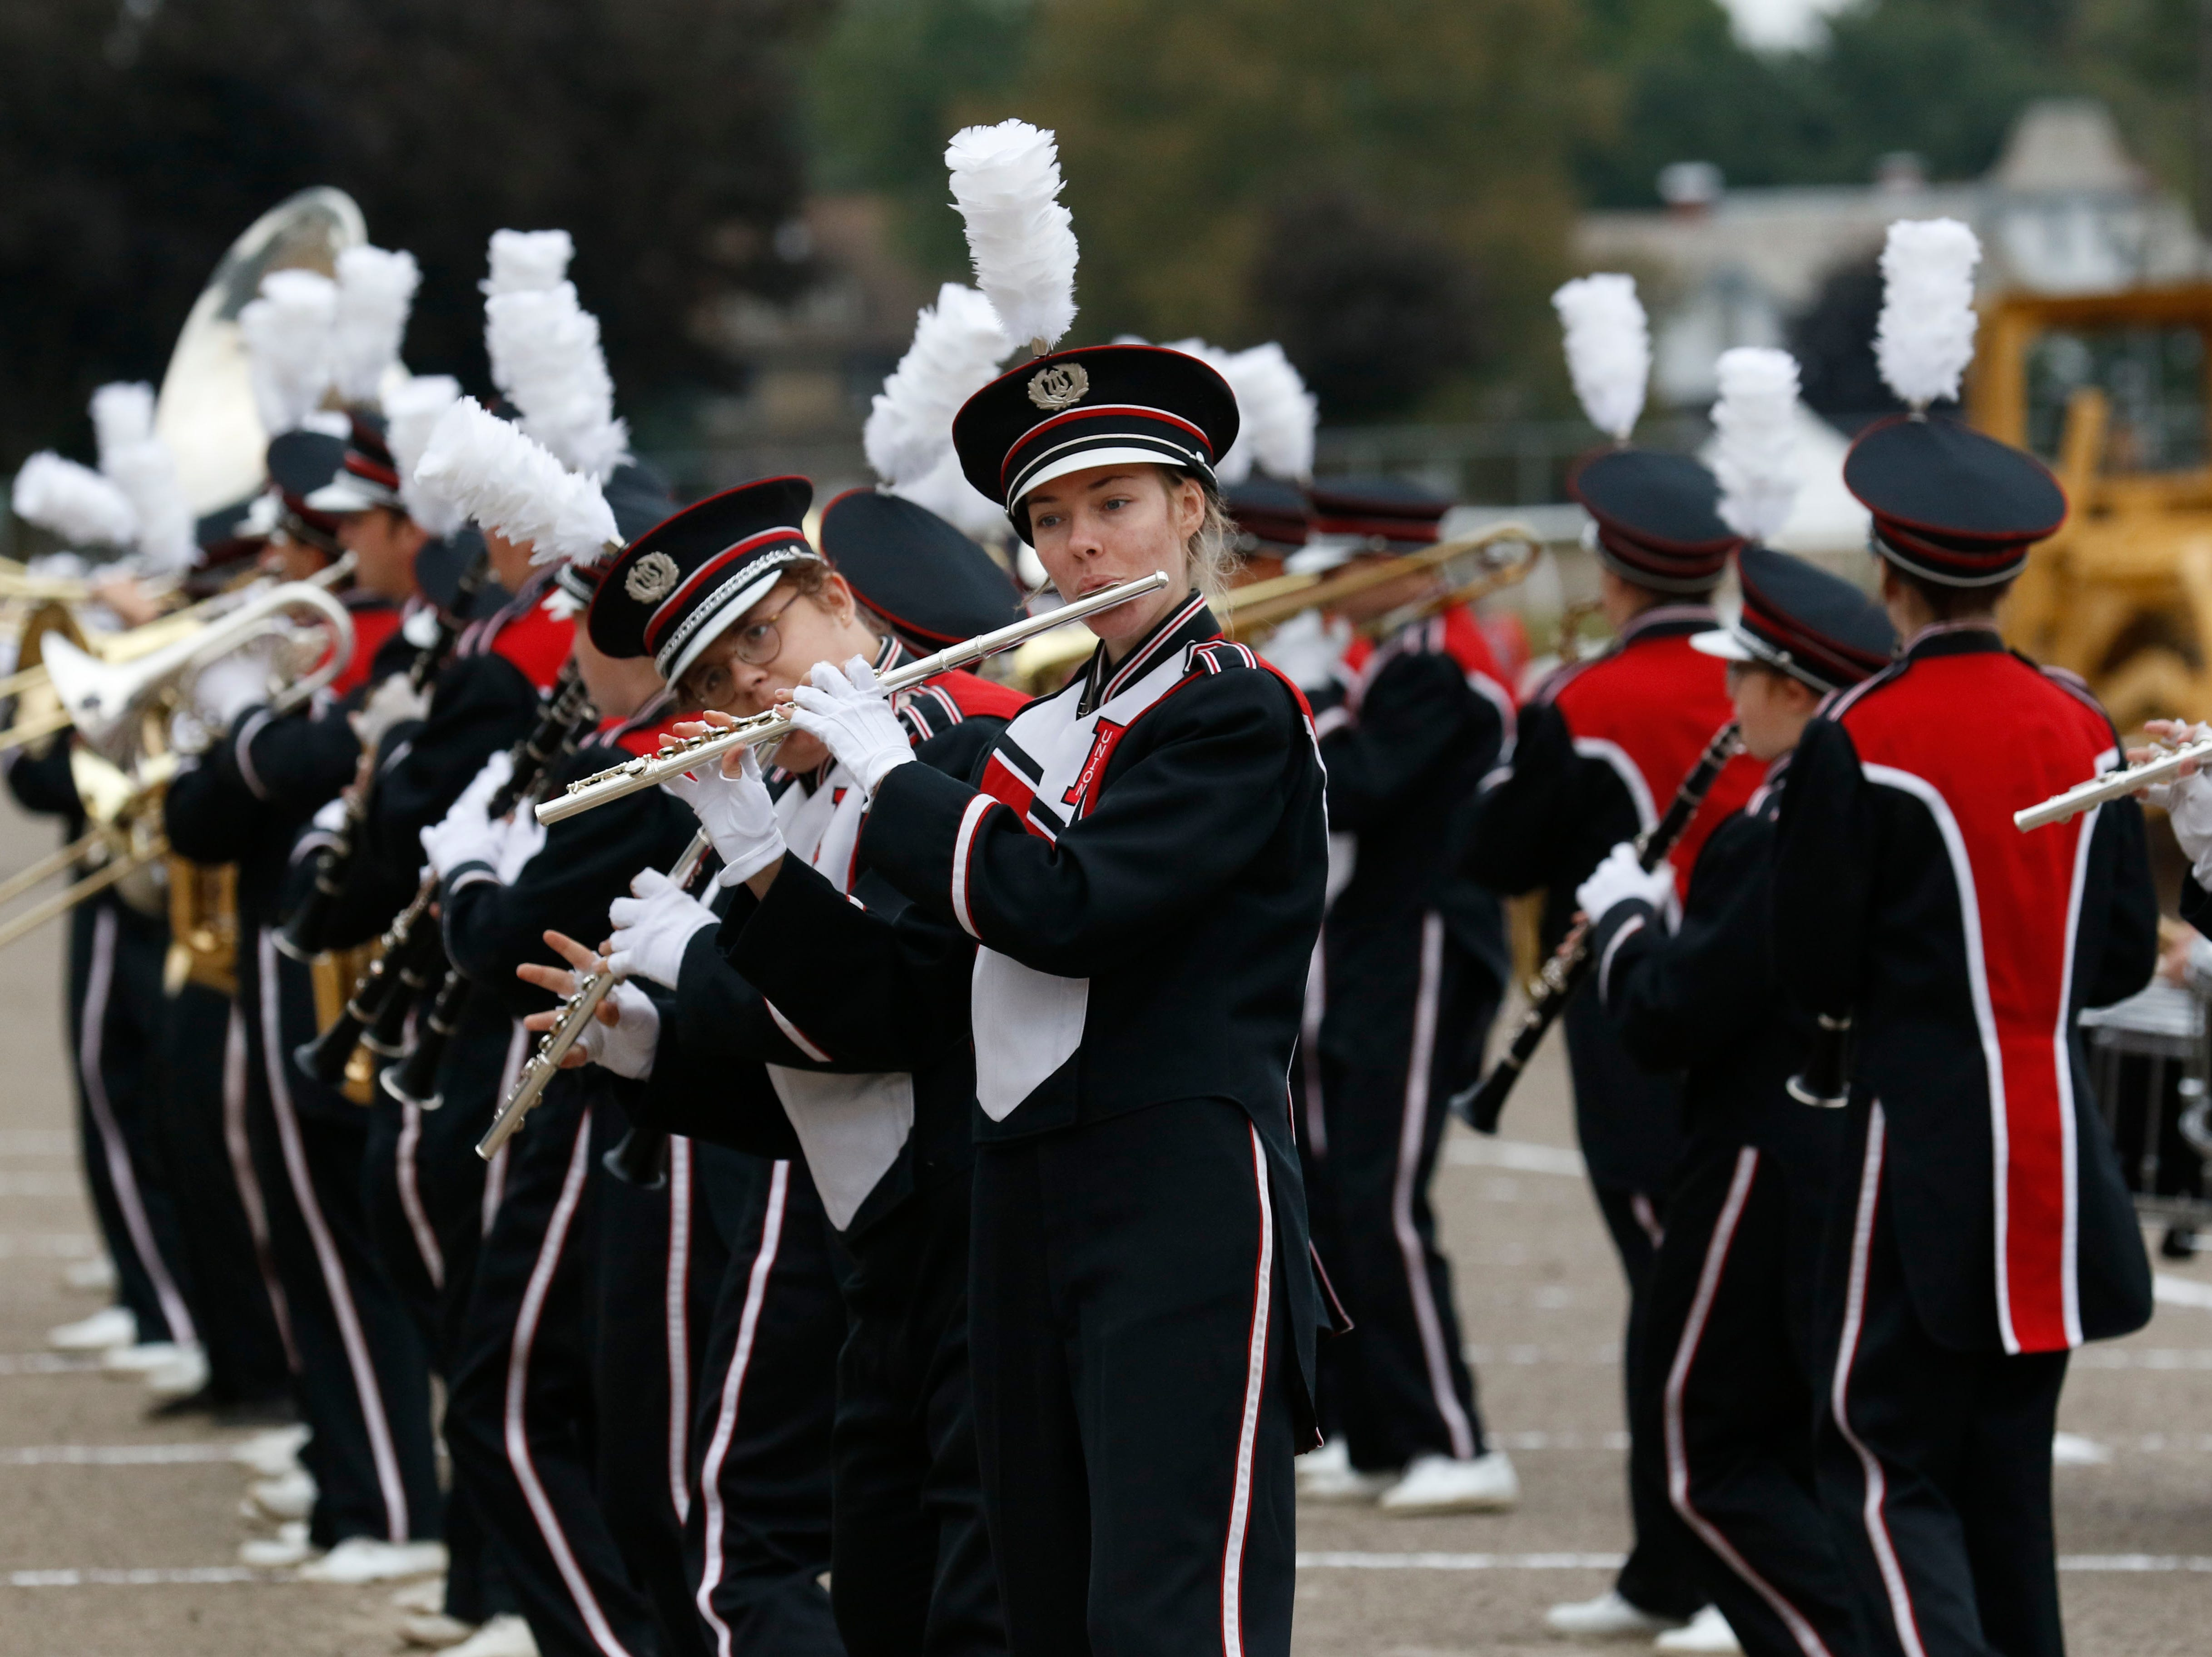 The Fairfield Union High School Marching Falcons perform Thursday morning, Oct. 11, 2018, during the Parade of Bands at the Fairfield County Fair in Lancaster. Bands from eight high schools in the county performed to a crowded grandstand of spectators.